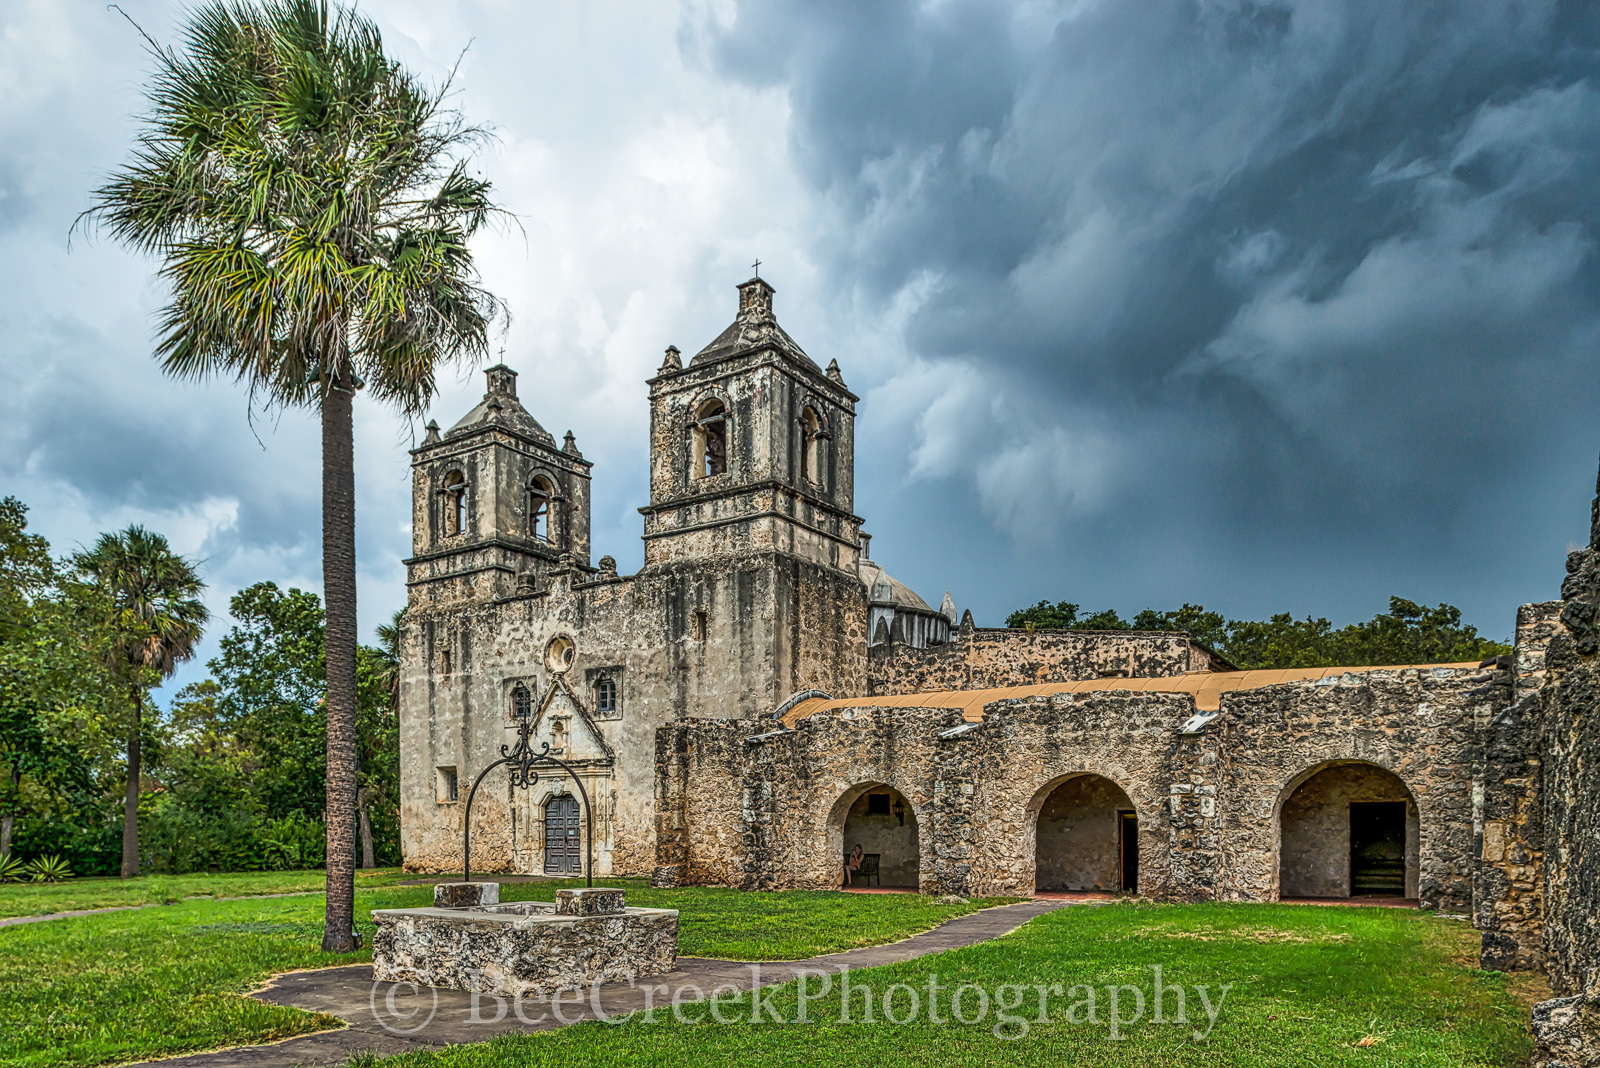 Battle of Concepcion, Mission ConcepciÛn, National Historic Landmarks, San Antonio, downtown, historic, indians, landmark, mexicans, spanish missions, stormy skies, texas missions, texians, world heri, photo